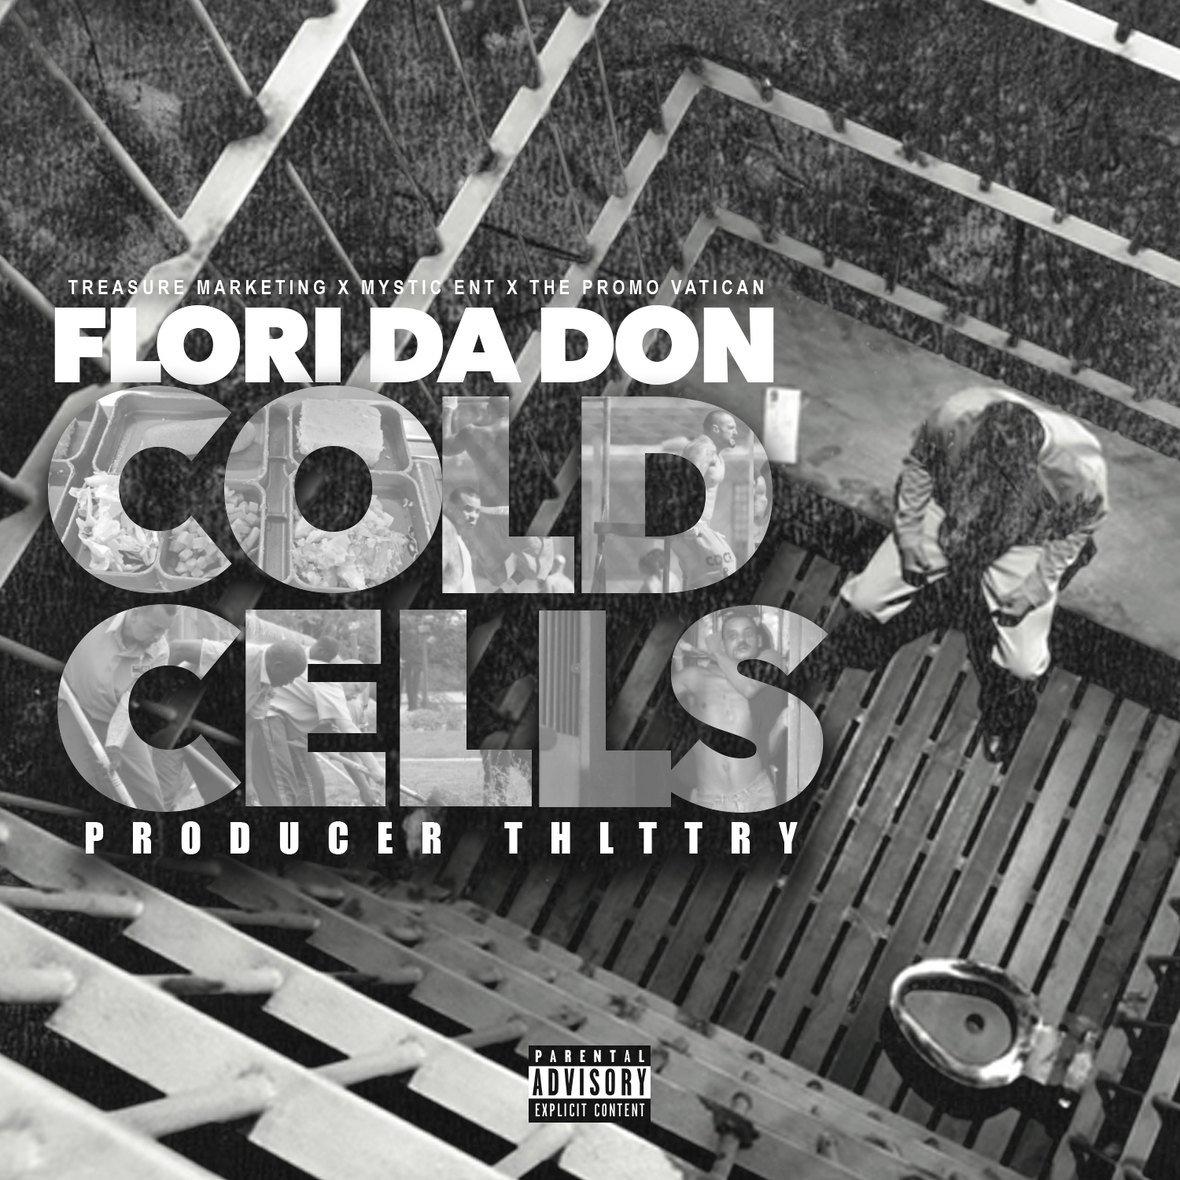 FLORI DA DON COLD CELLS